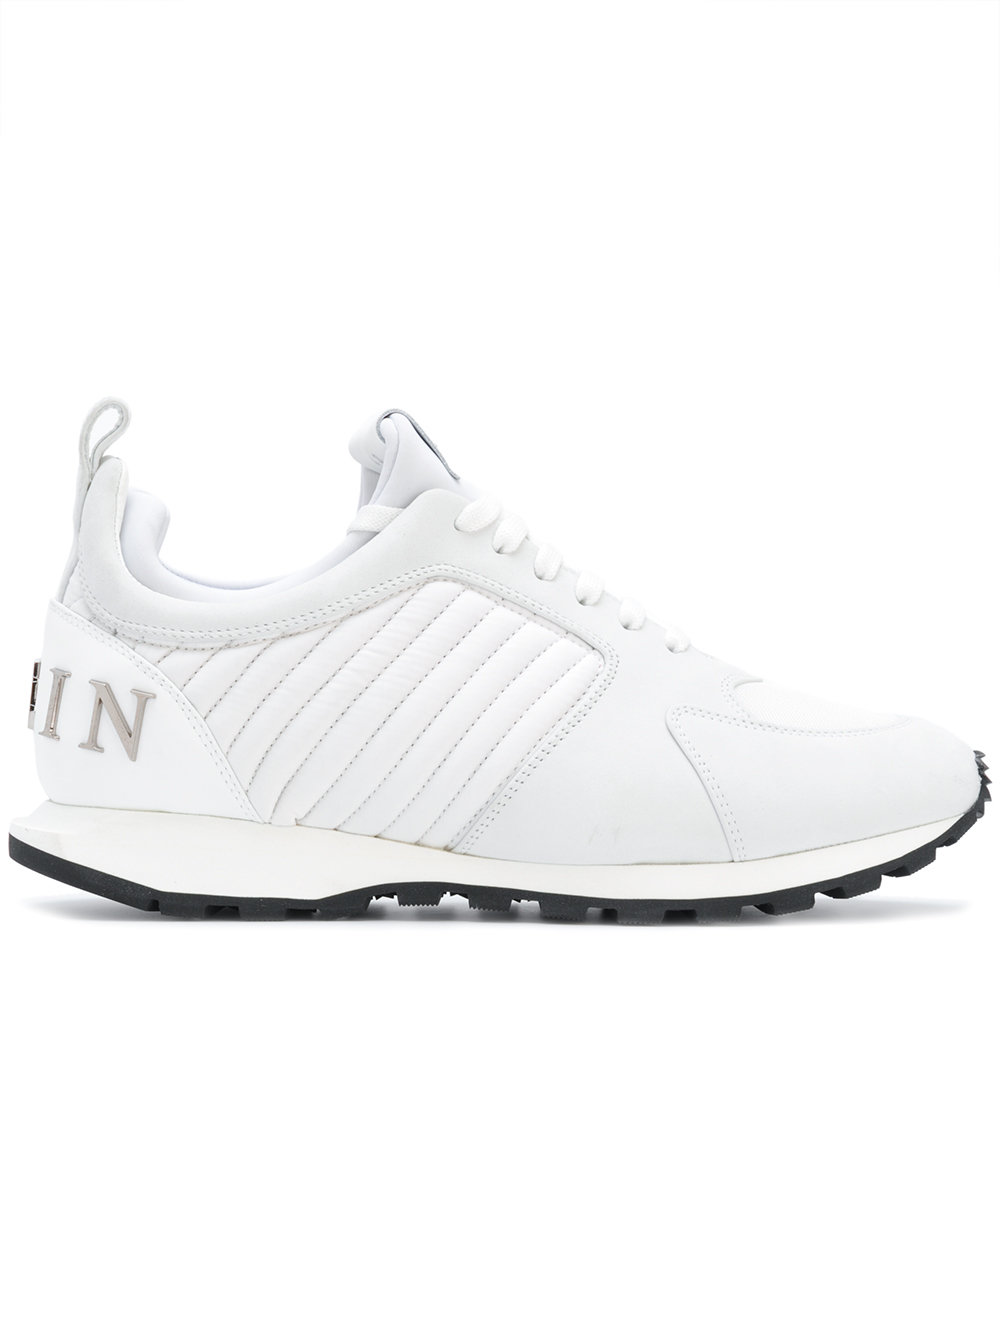 Philipp Plein RUNNER SETTING SNEAKERS